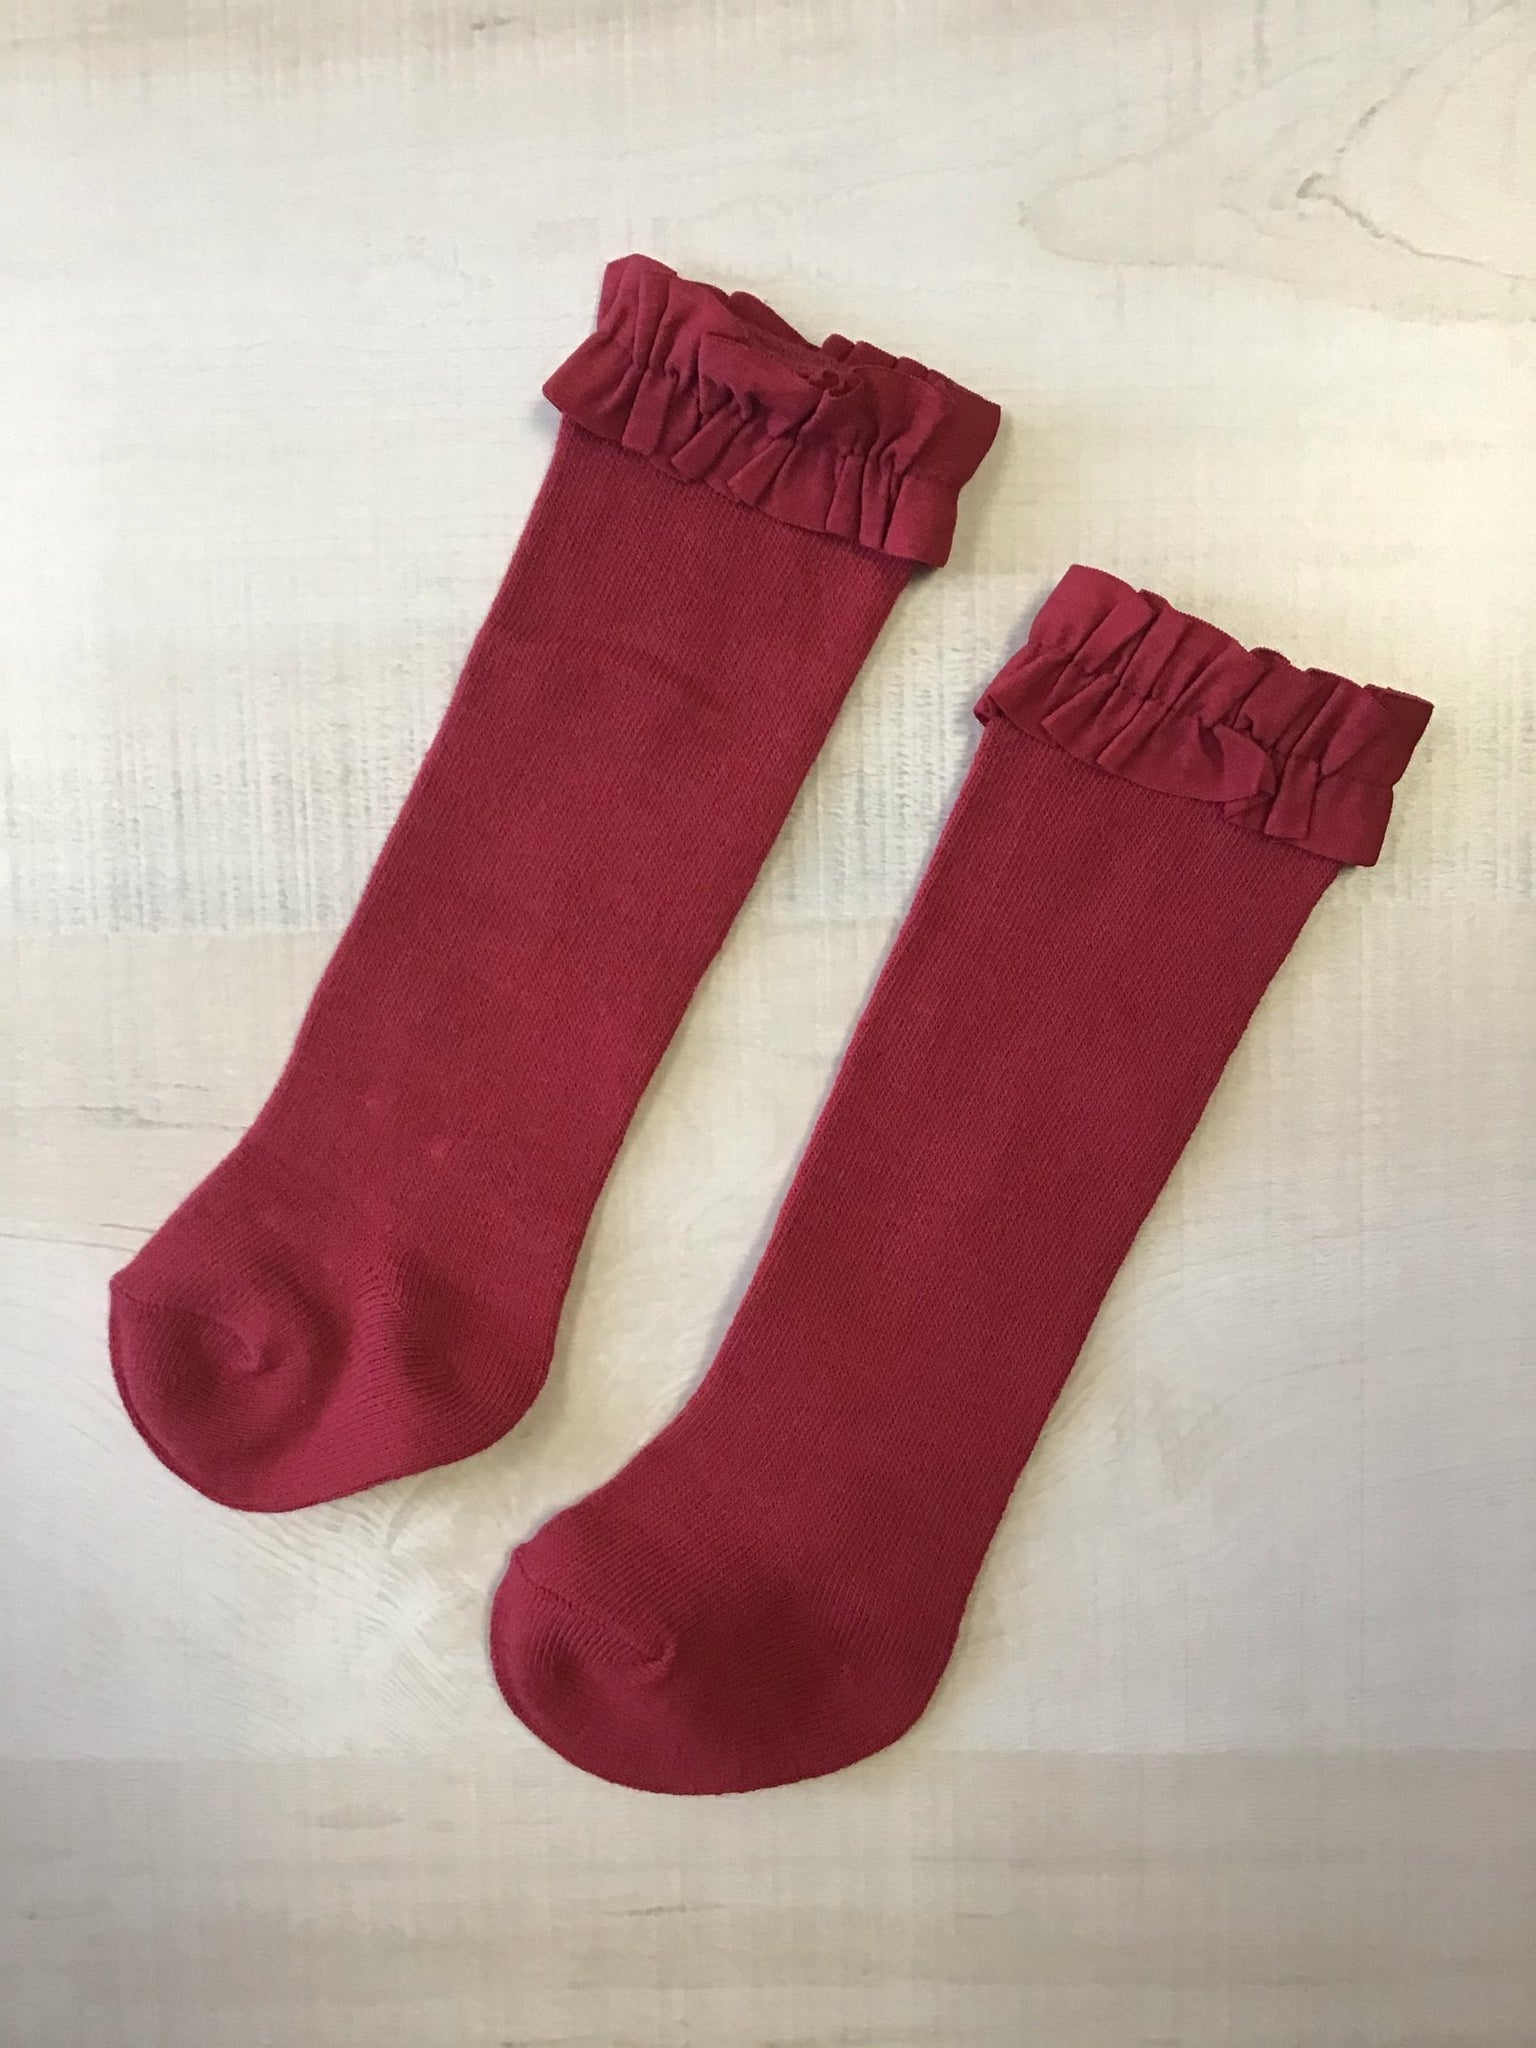 Cranberry Knee High Socks